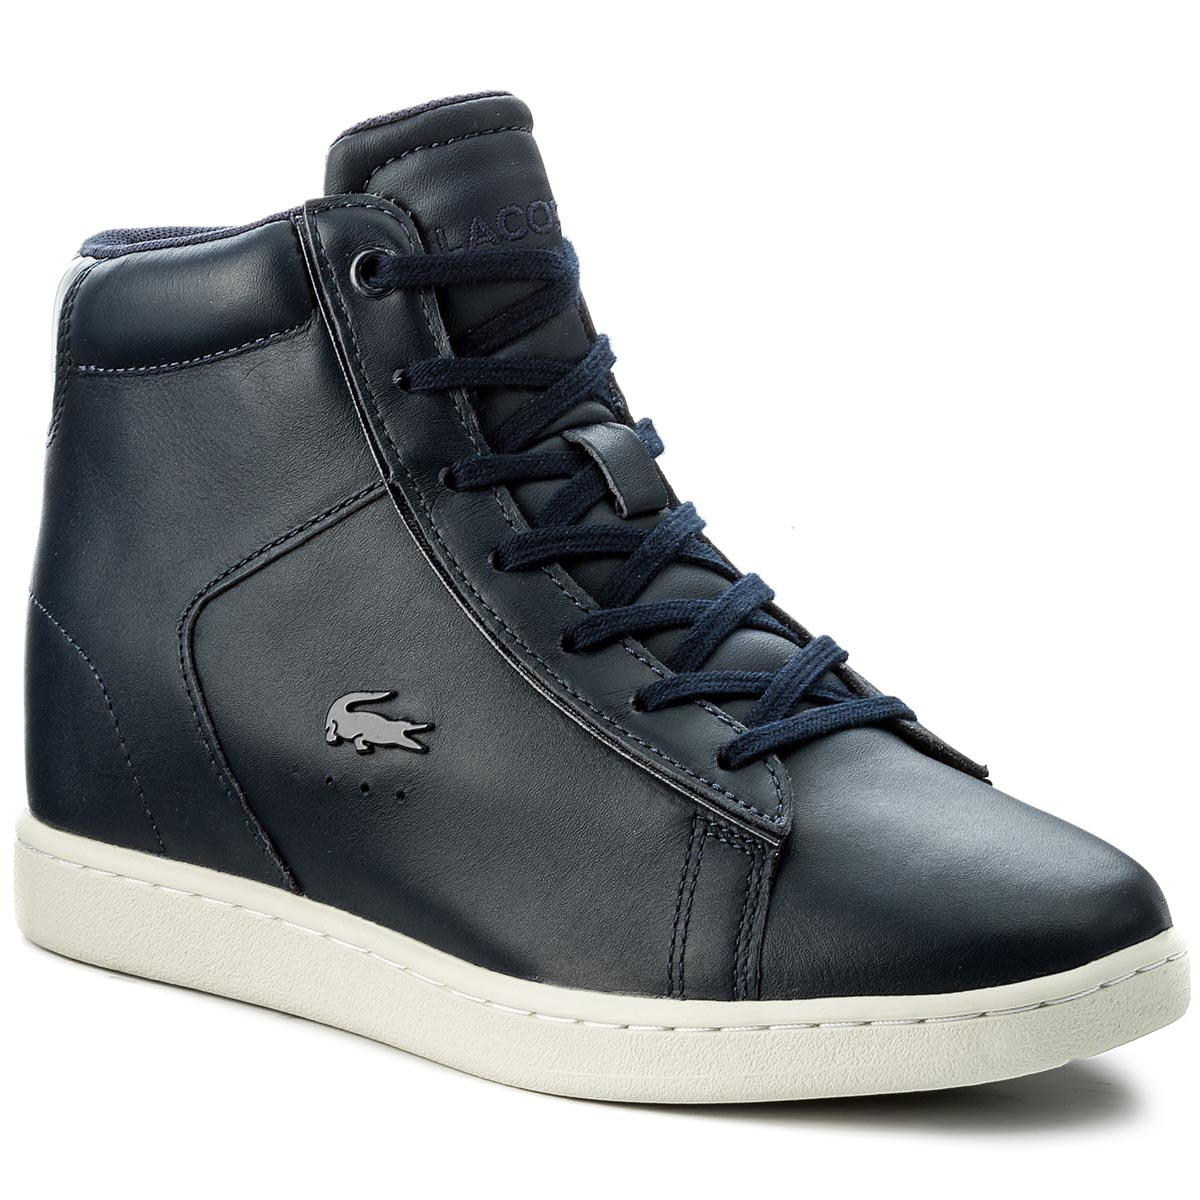 Sneakersy LACOSTE - Carnaby Evo Wedge 417 1 Spw 7-34SPW0017003 Nvy